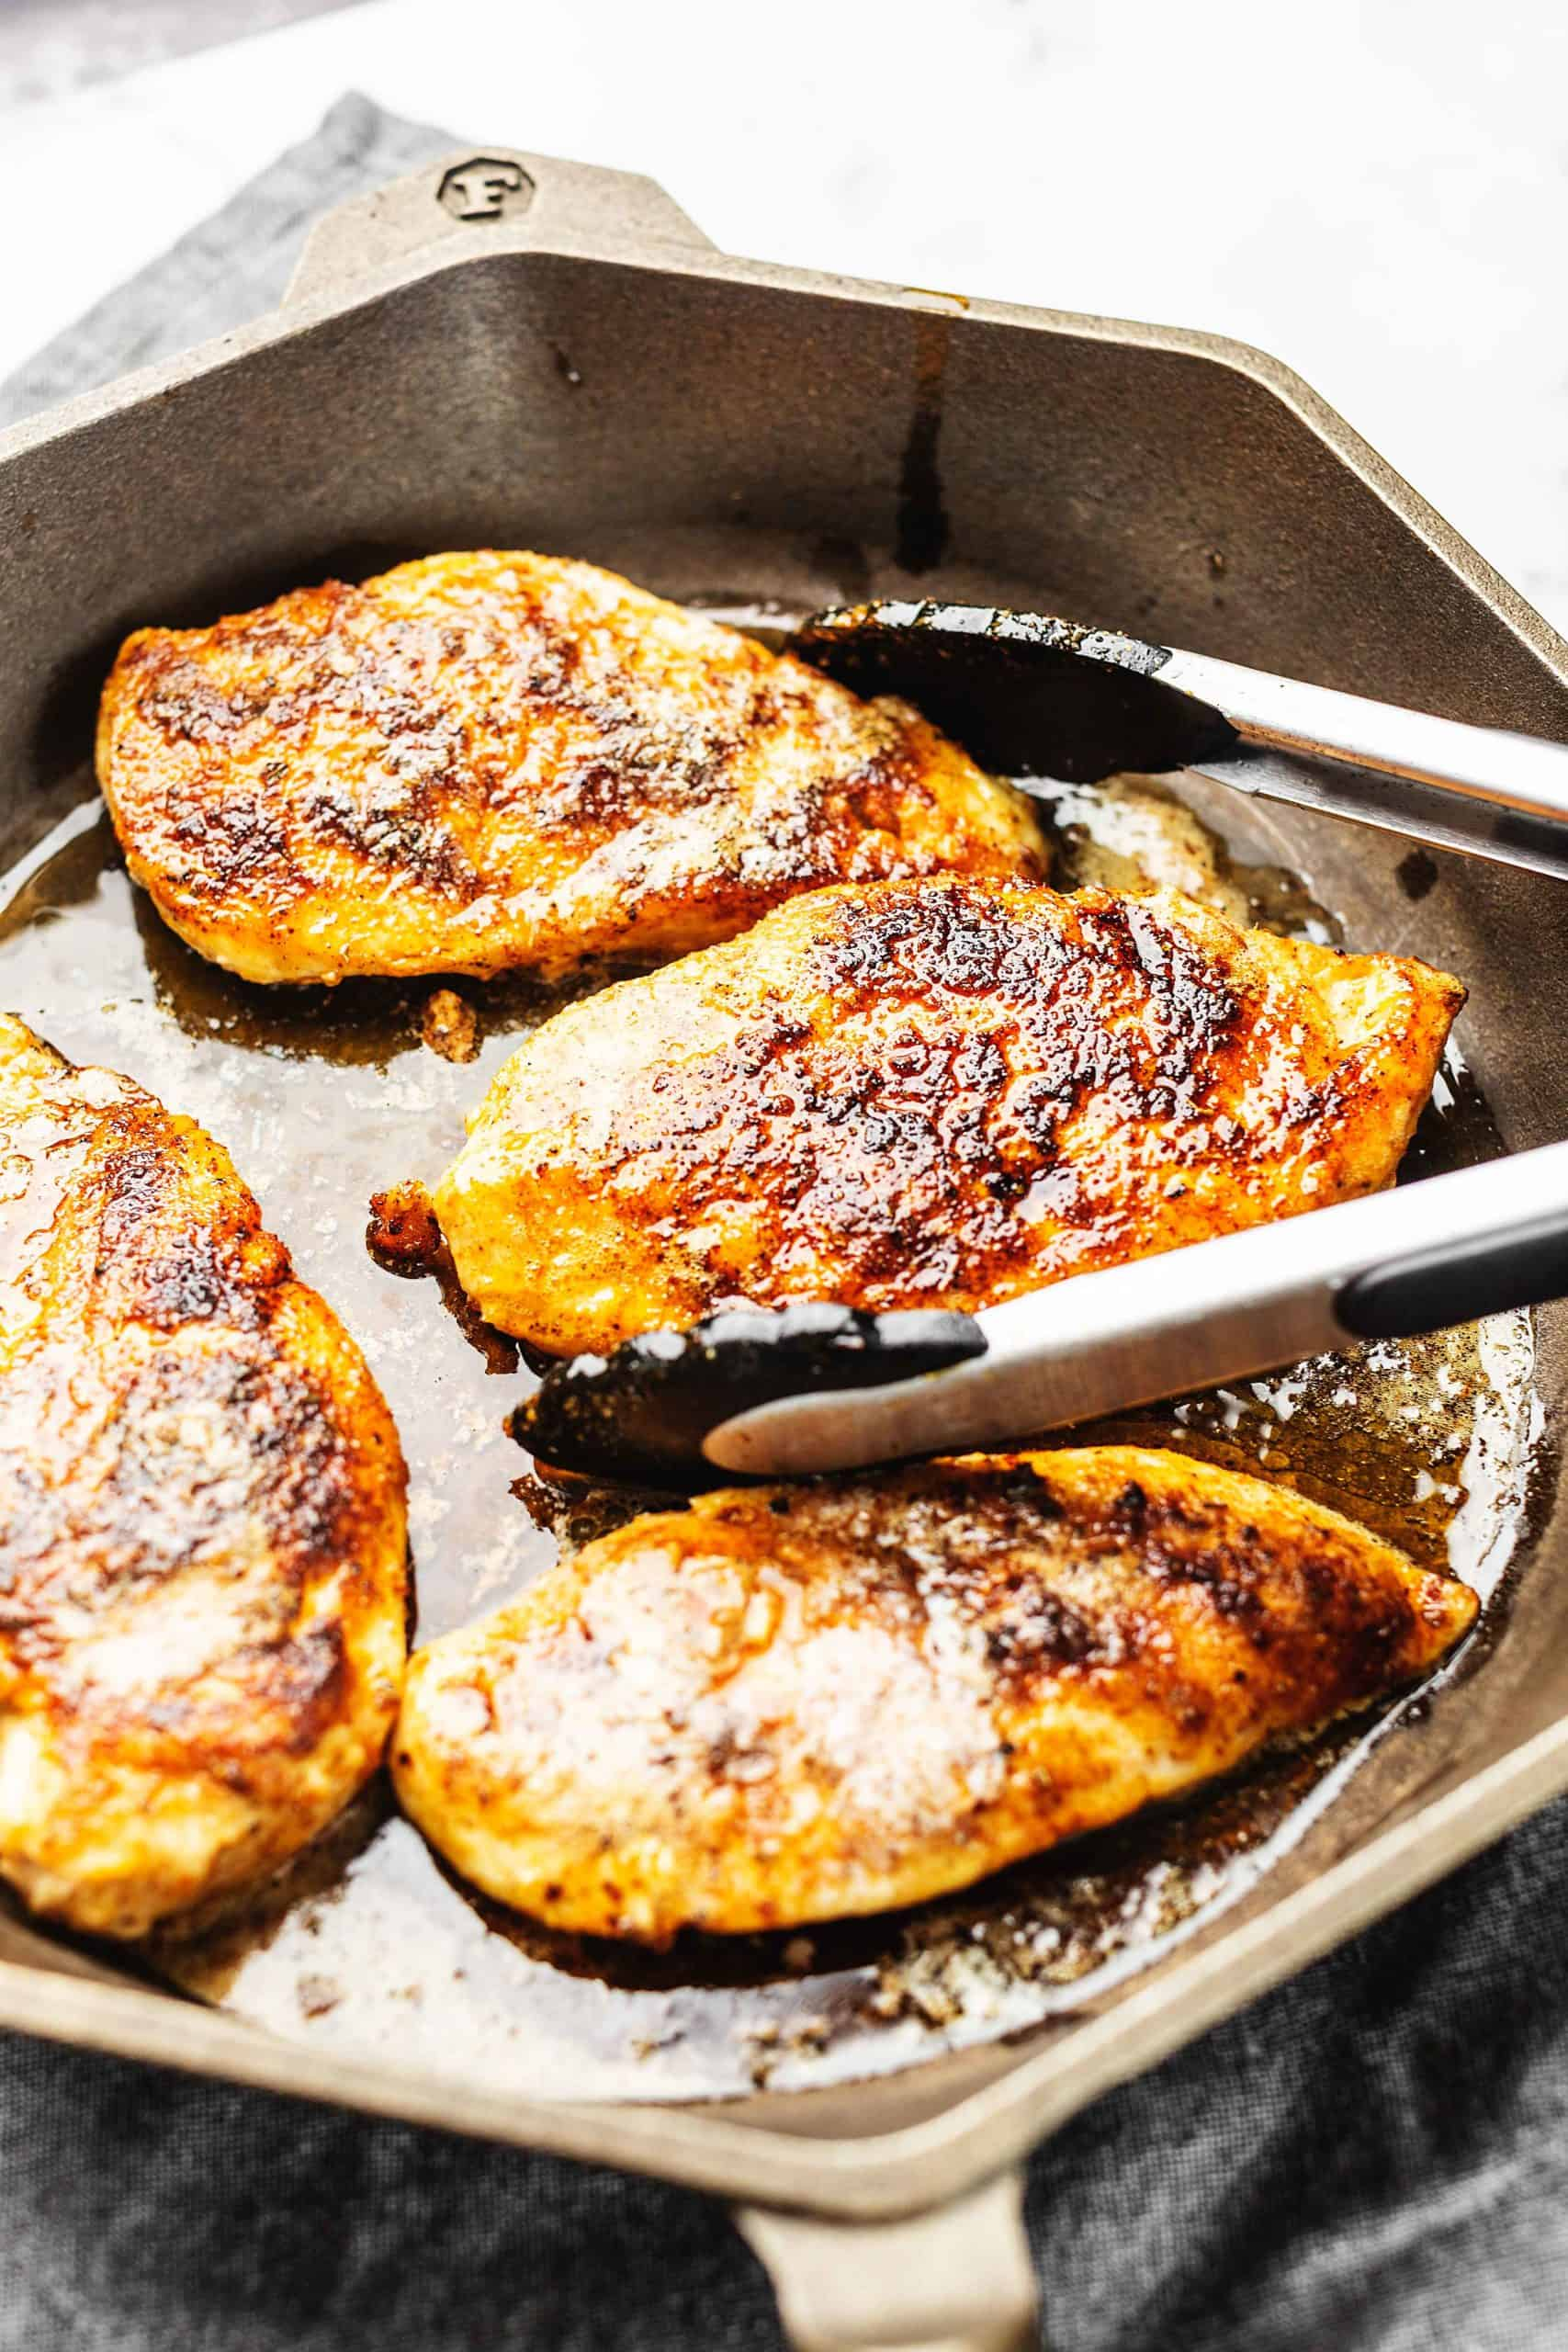 chicken breast cooked in a cast iron skillet